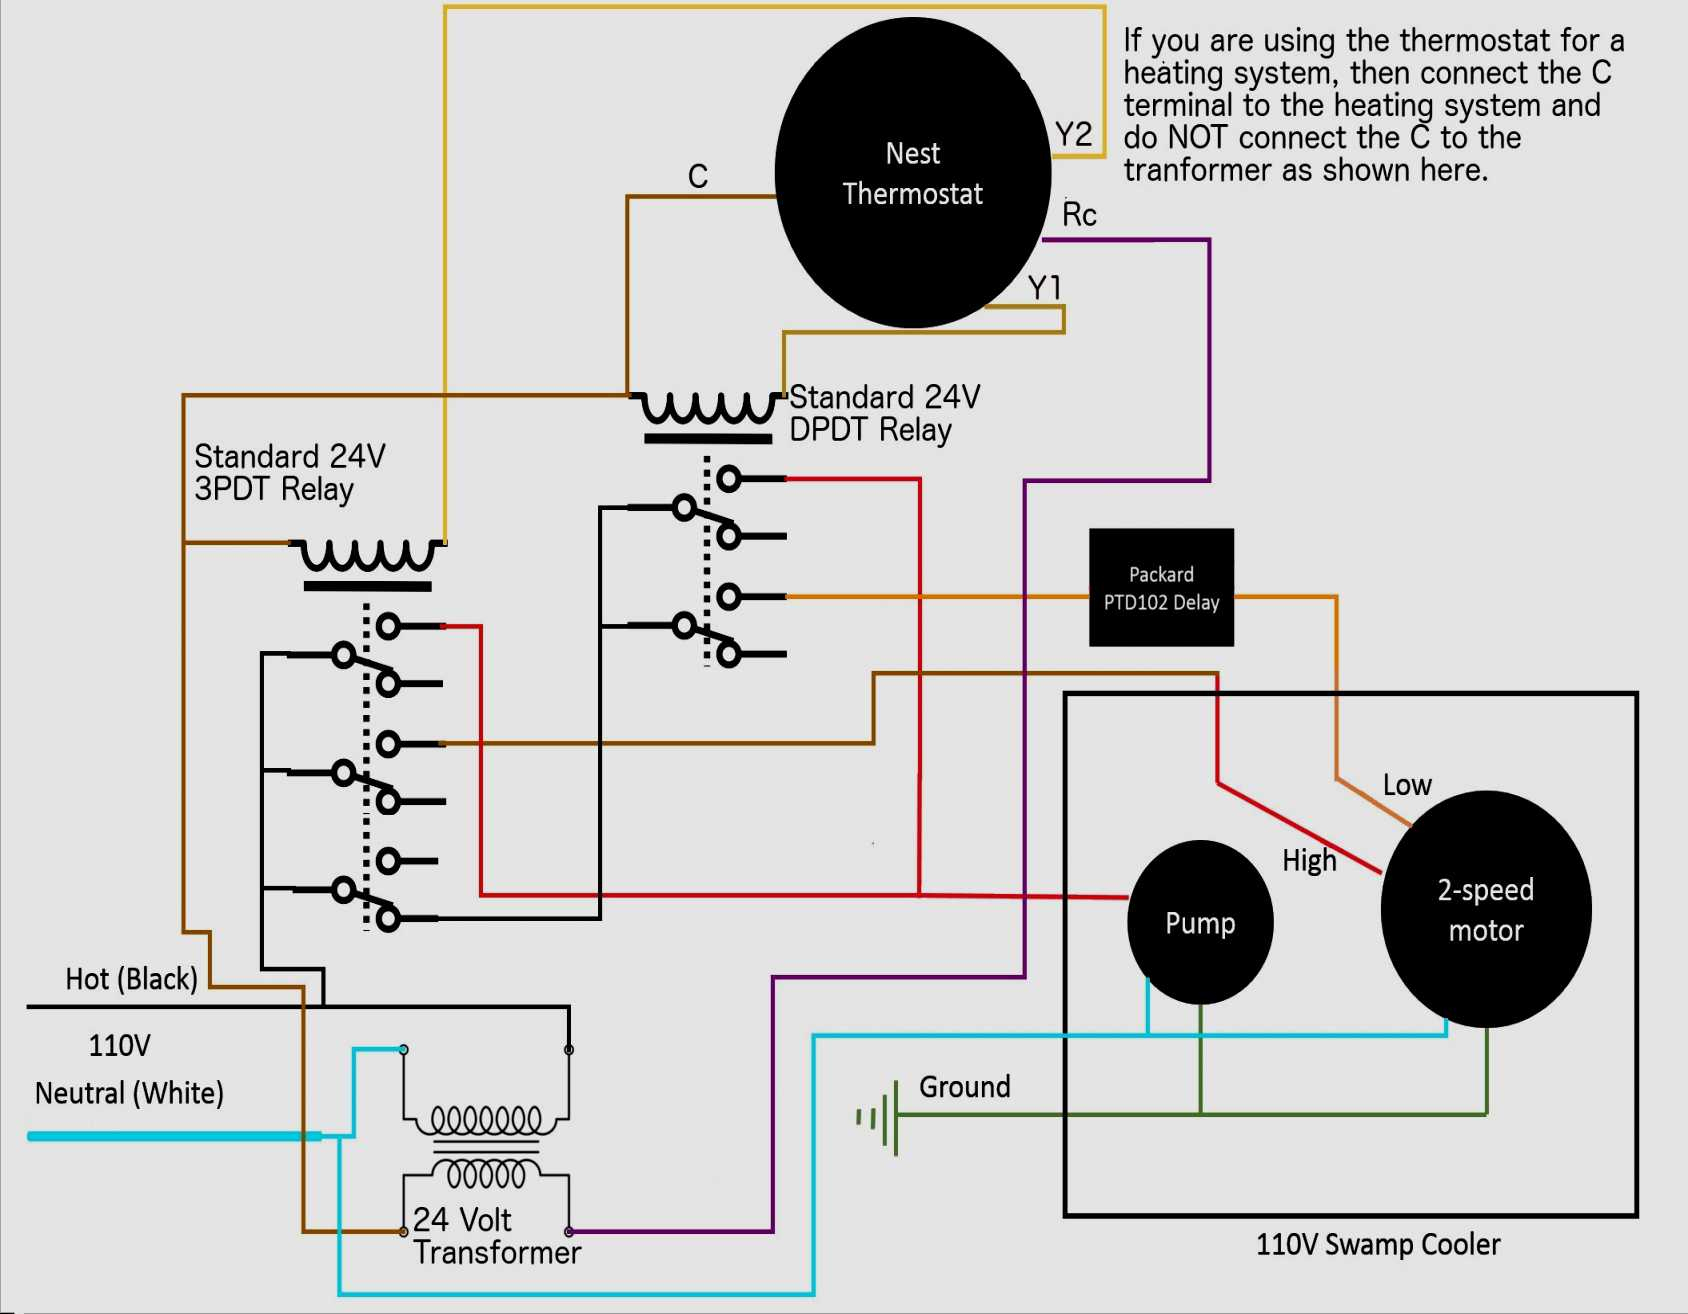 Honeywell Humidifier Wiring Diagram With Nest - Wiring Diagram Essig - Nest E Thermostat Wiring Diagram